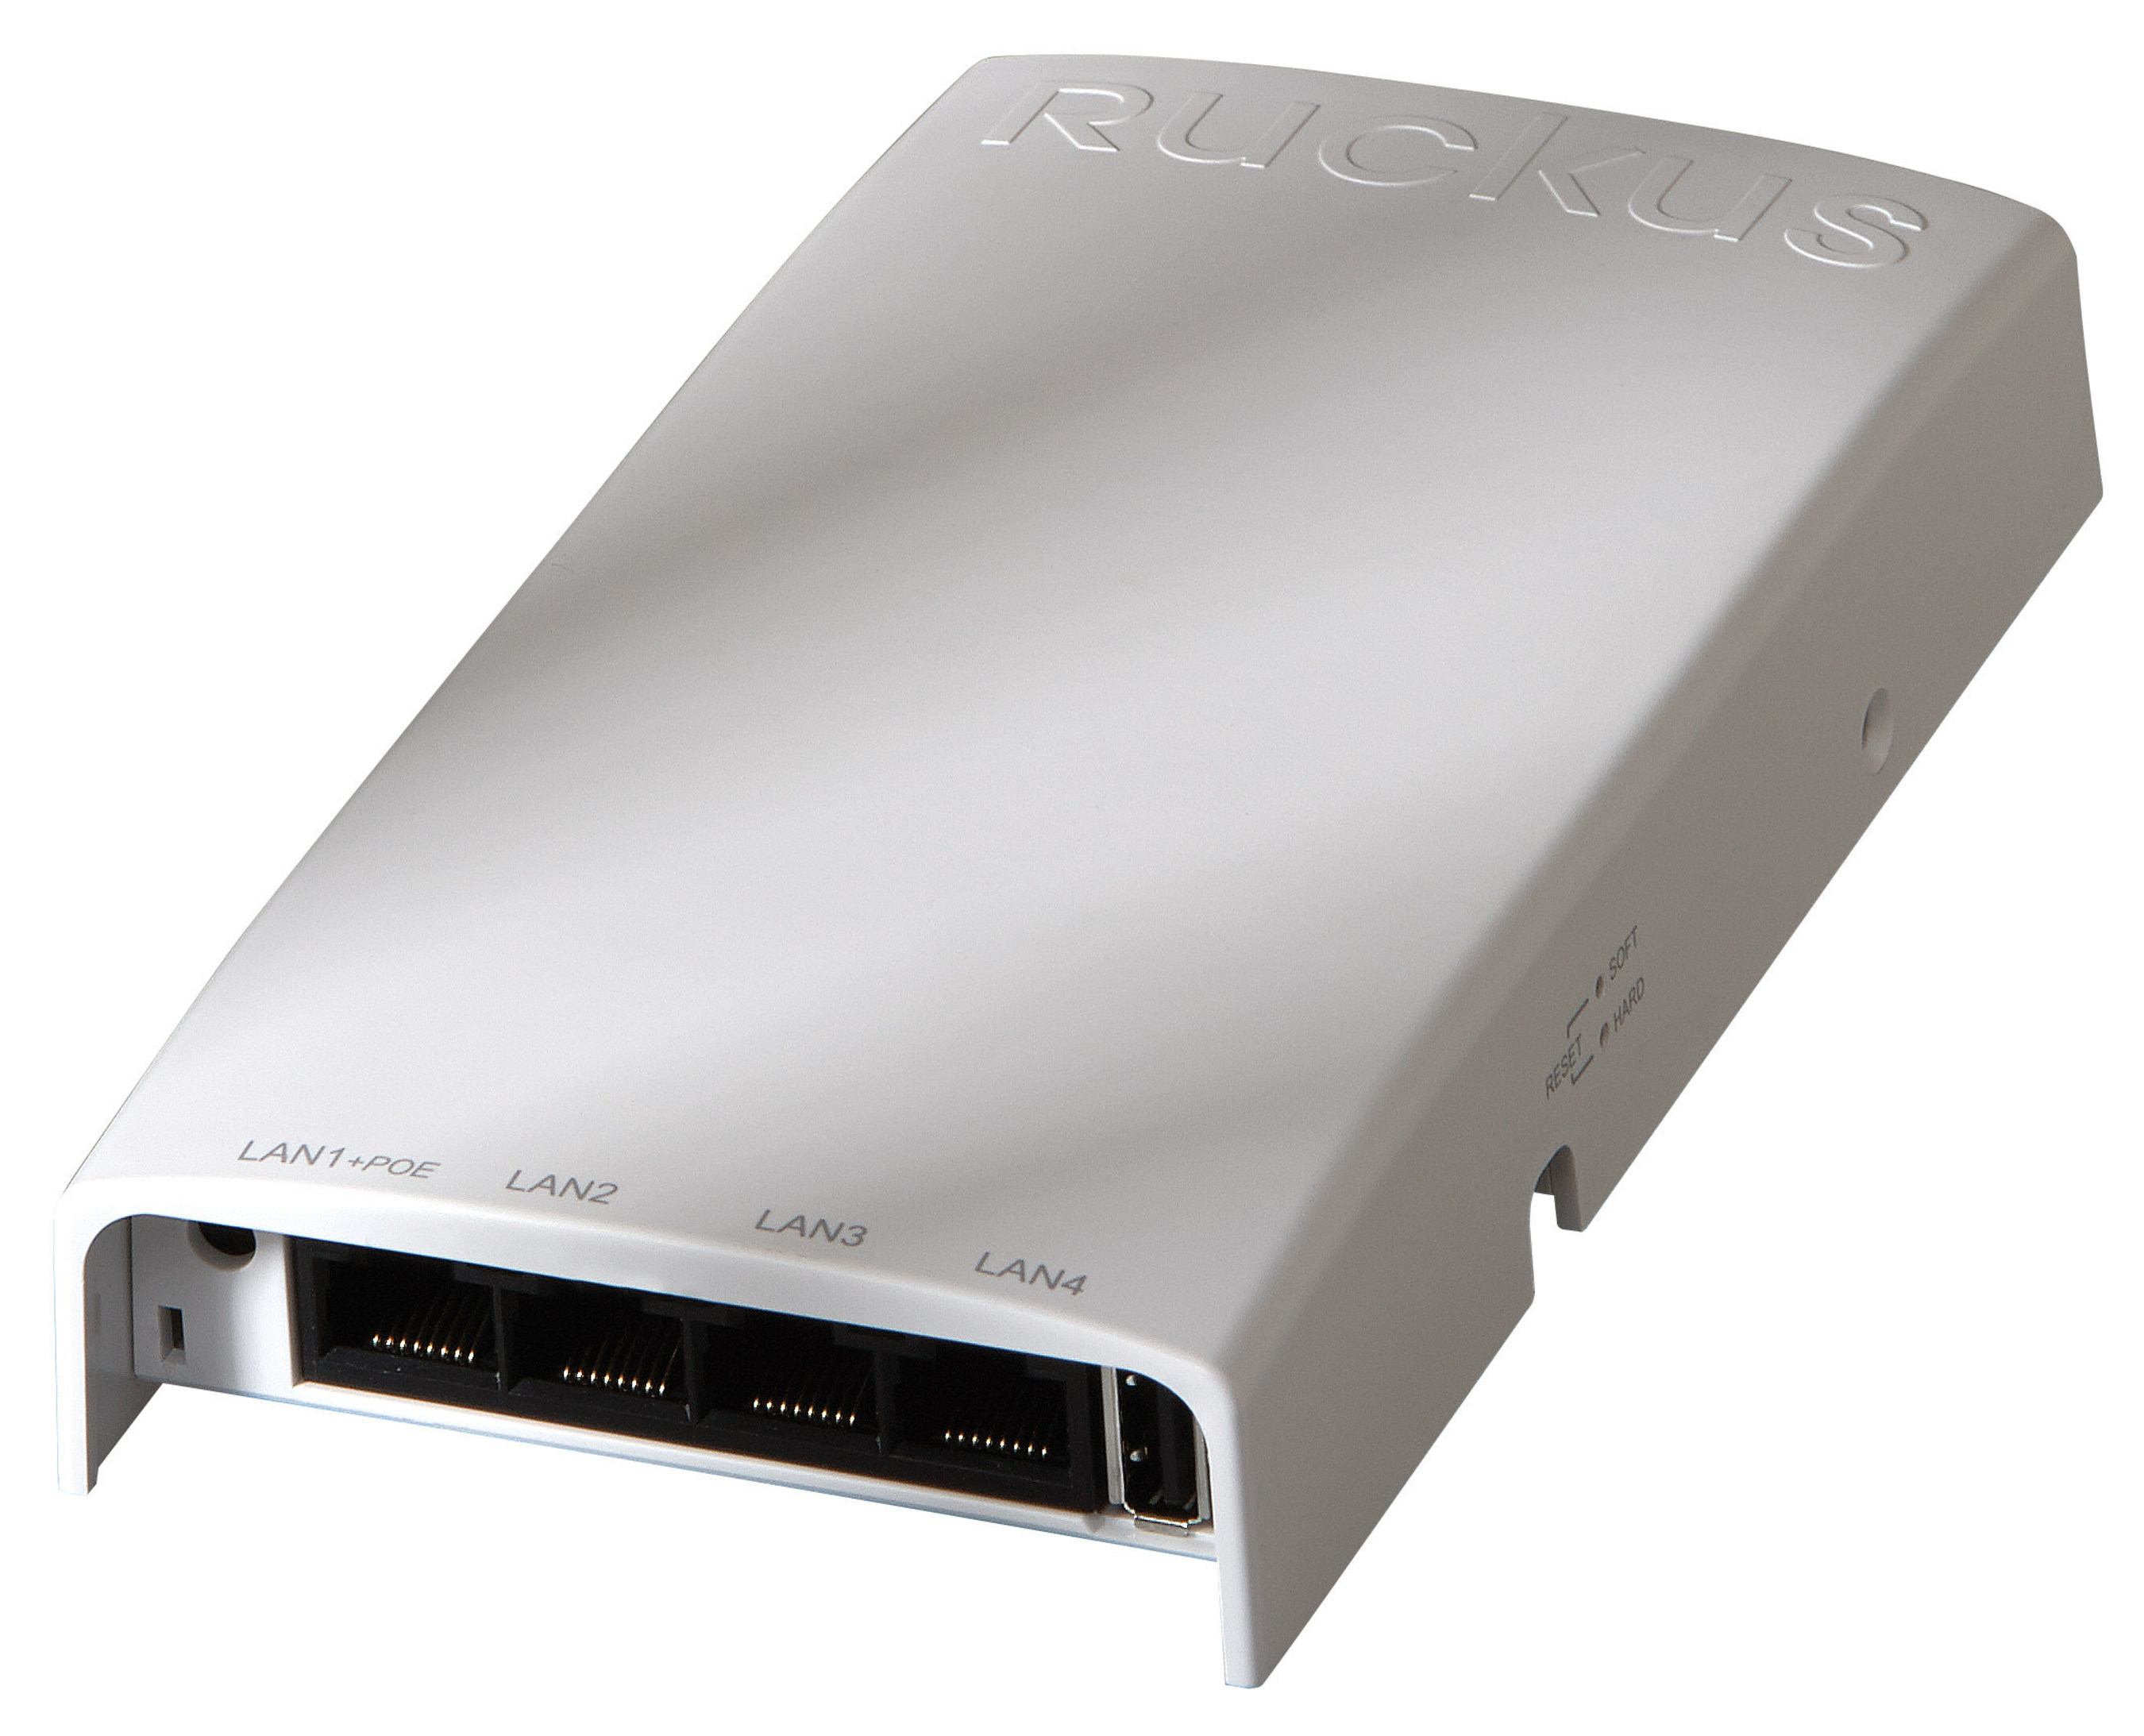 Ruckus Wireless Continues Hospitality Wi-Fi Leadership with Launch of ZoneFlex H500 802.11ac Wall Switch